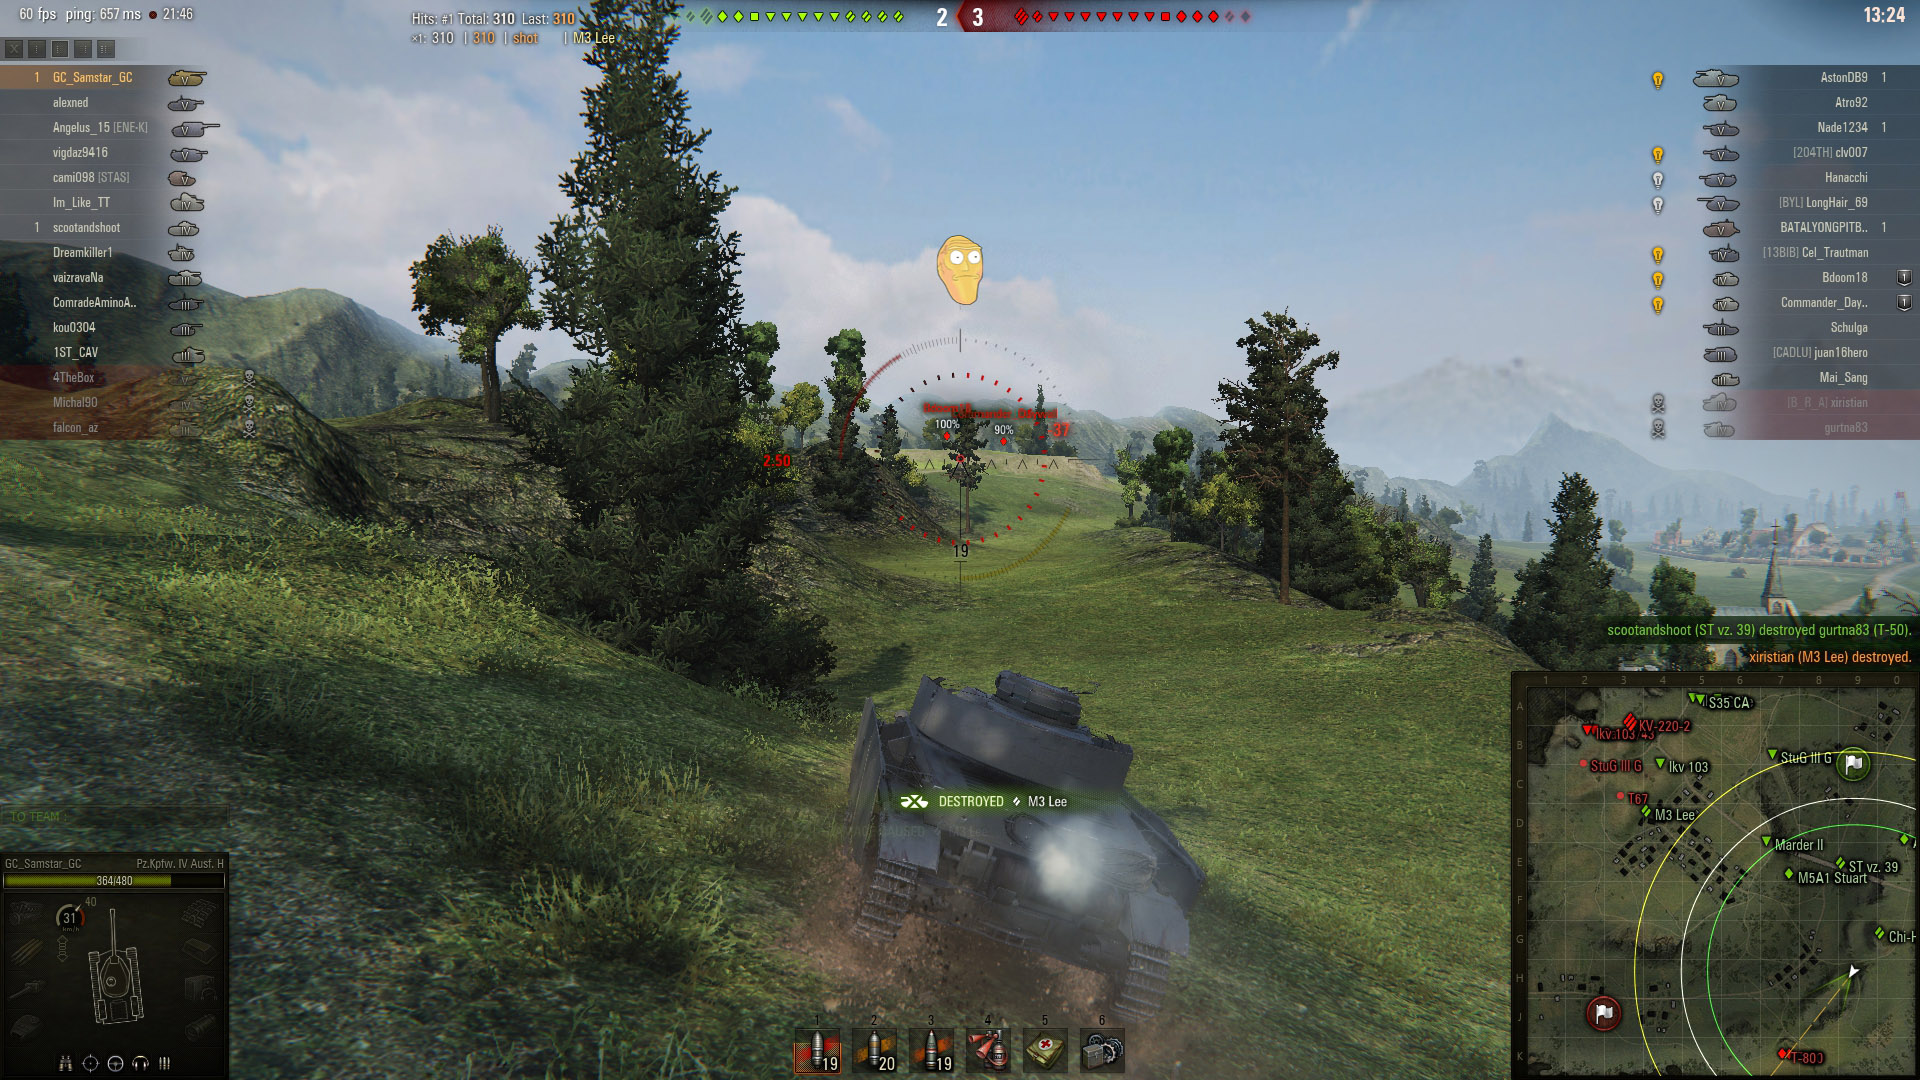 The XVM Mod allows you to change some of the visuals in World of Tanks, such as the Sixth Sense perk.